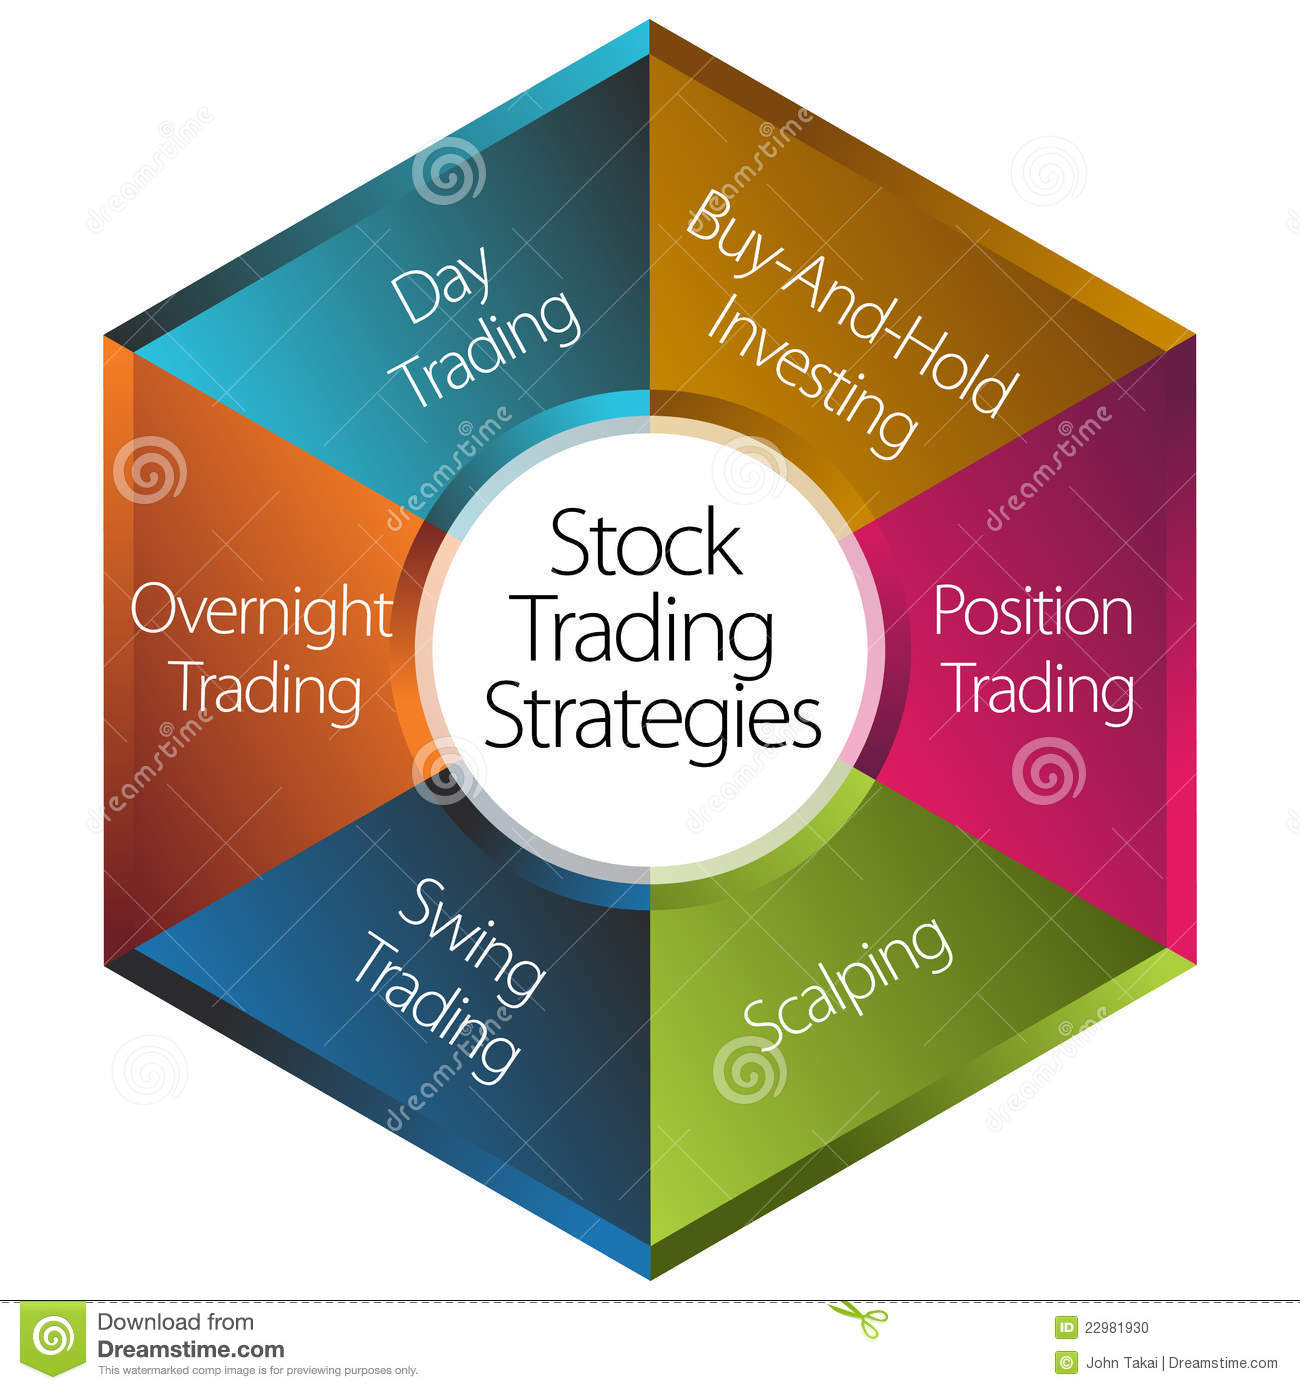 Stock options trading systems